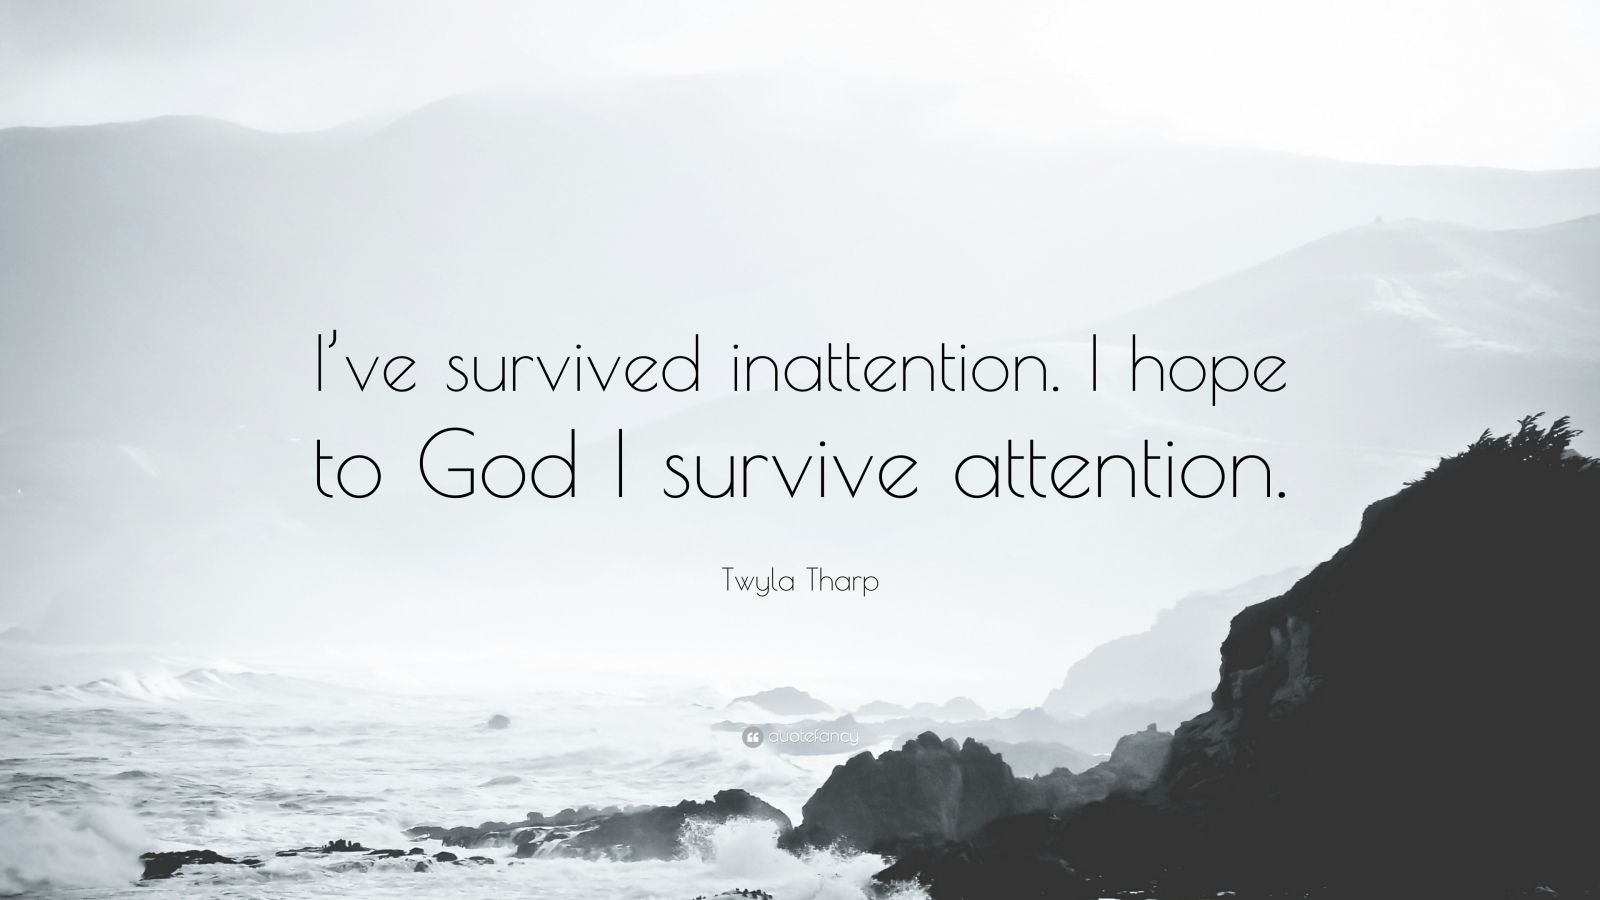 """Twyla Tharp Quote: """"I've survived inattention. I hope to God I survive attention."""""""